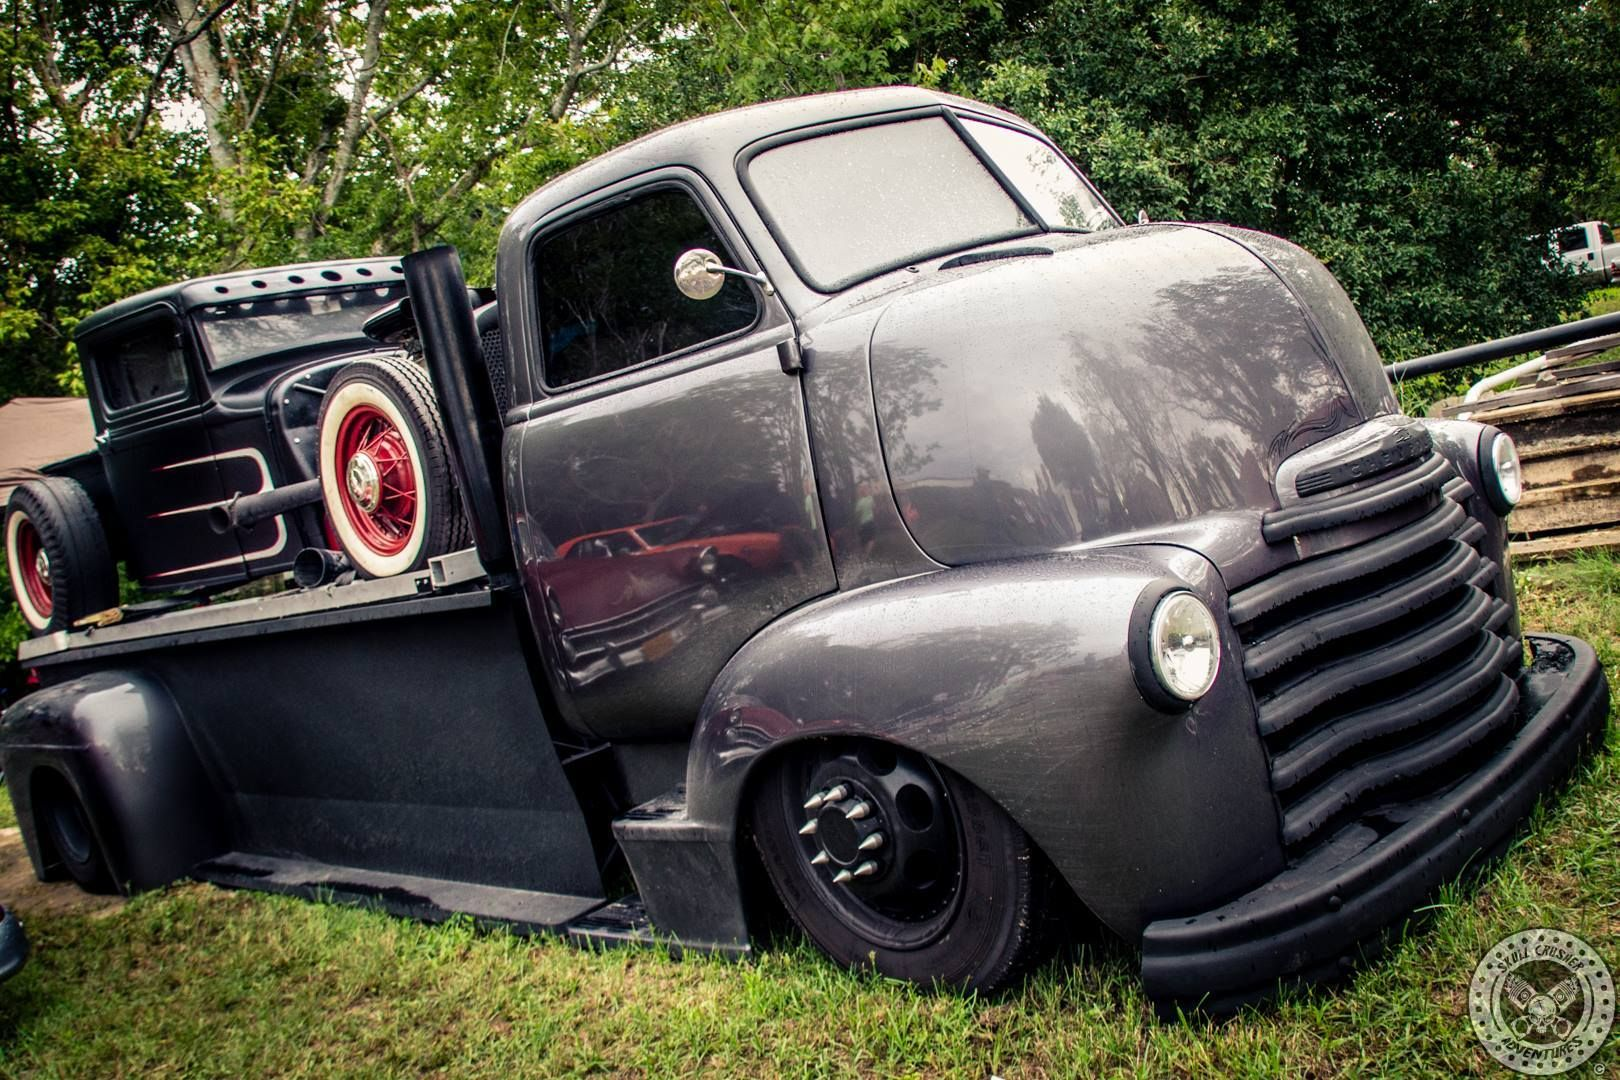 chevy chevrolet advanced desing coe pickup flatbed rolloff with a traditional pickup truck hotrod on the back white walls slammed gun metal gray flat  [ 1620 x 1080 Pixel ]